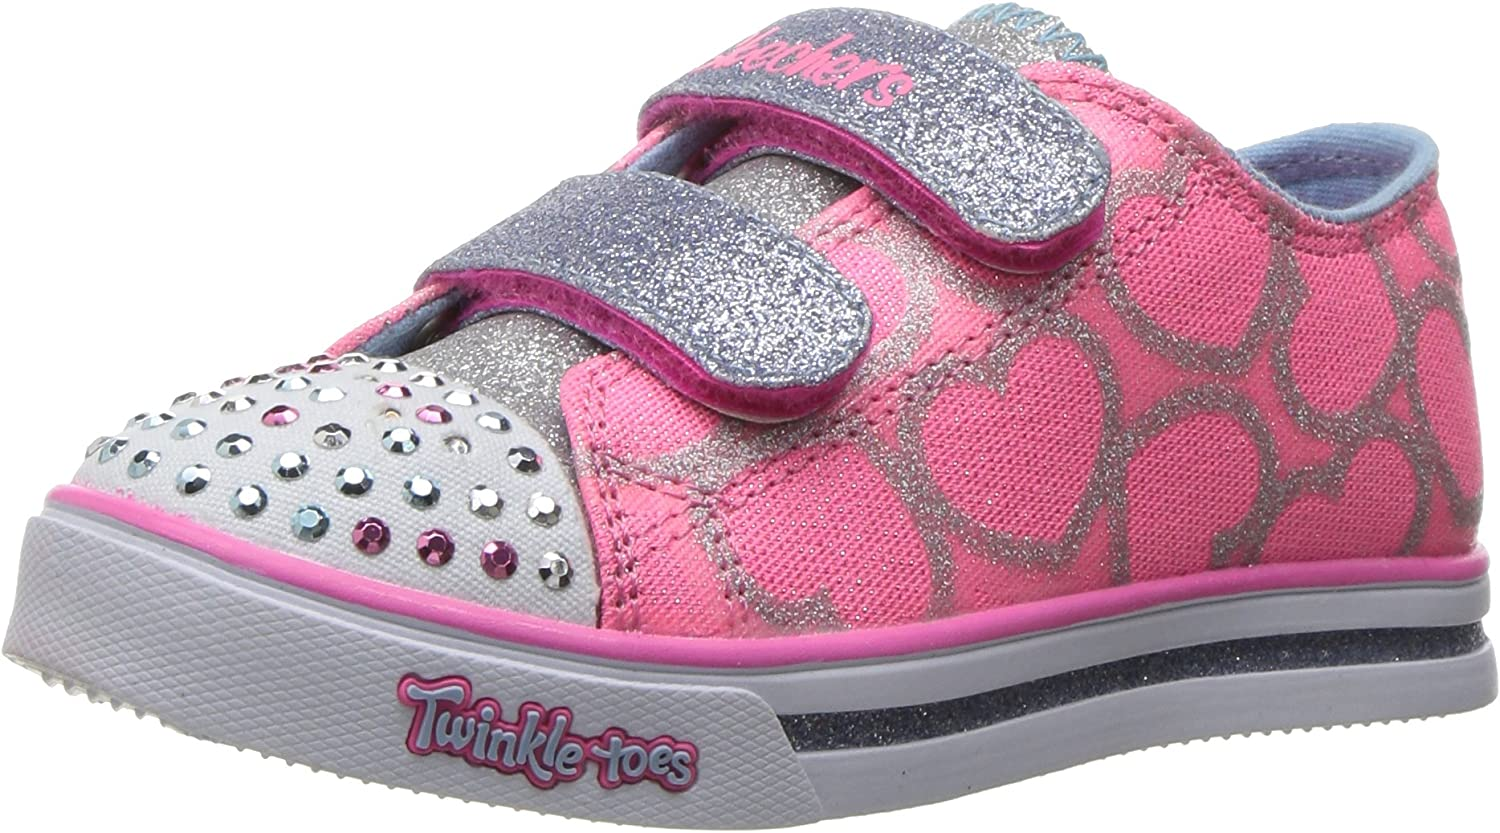 oferta choque apetito  Amazon.com | Skechers Kids Twinkle Toes Shuffles Sweet Steps Light-Up  Sneaker | Sneakers